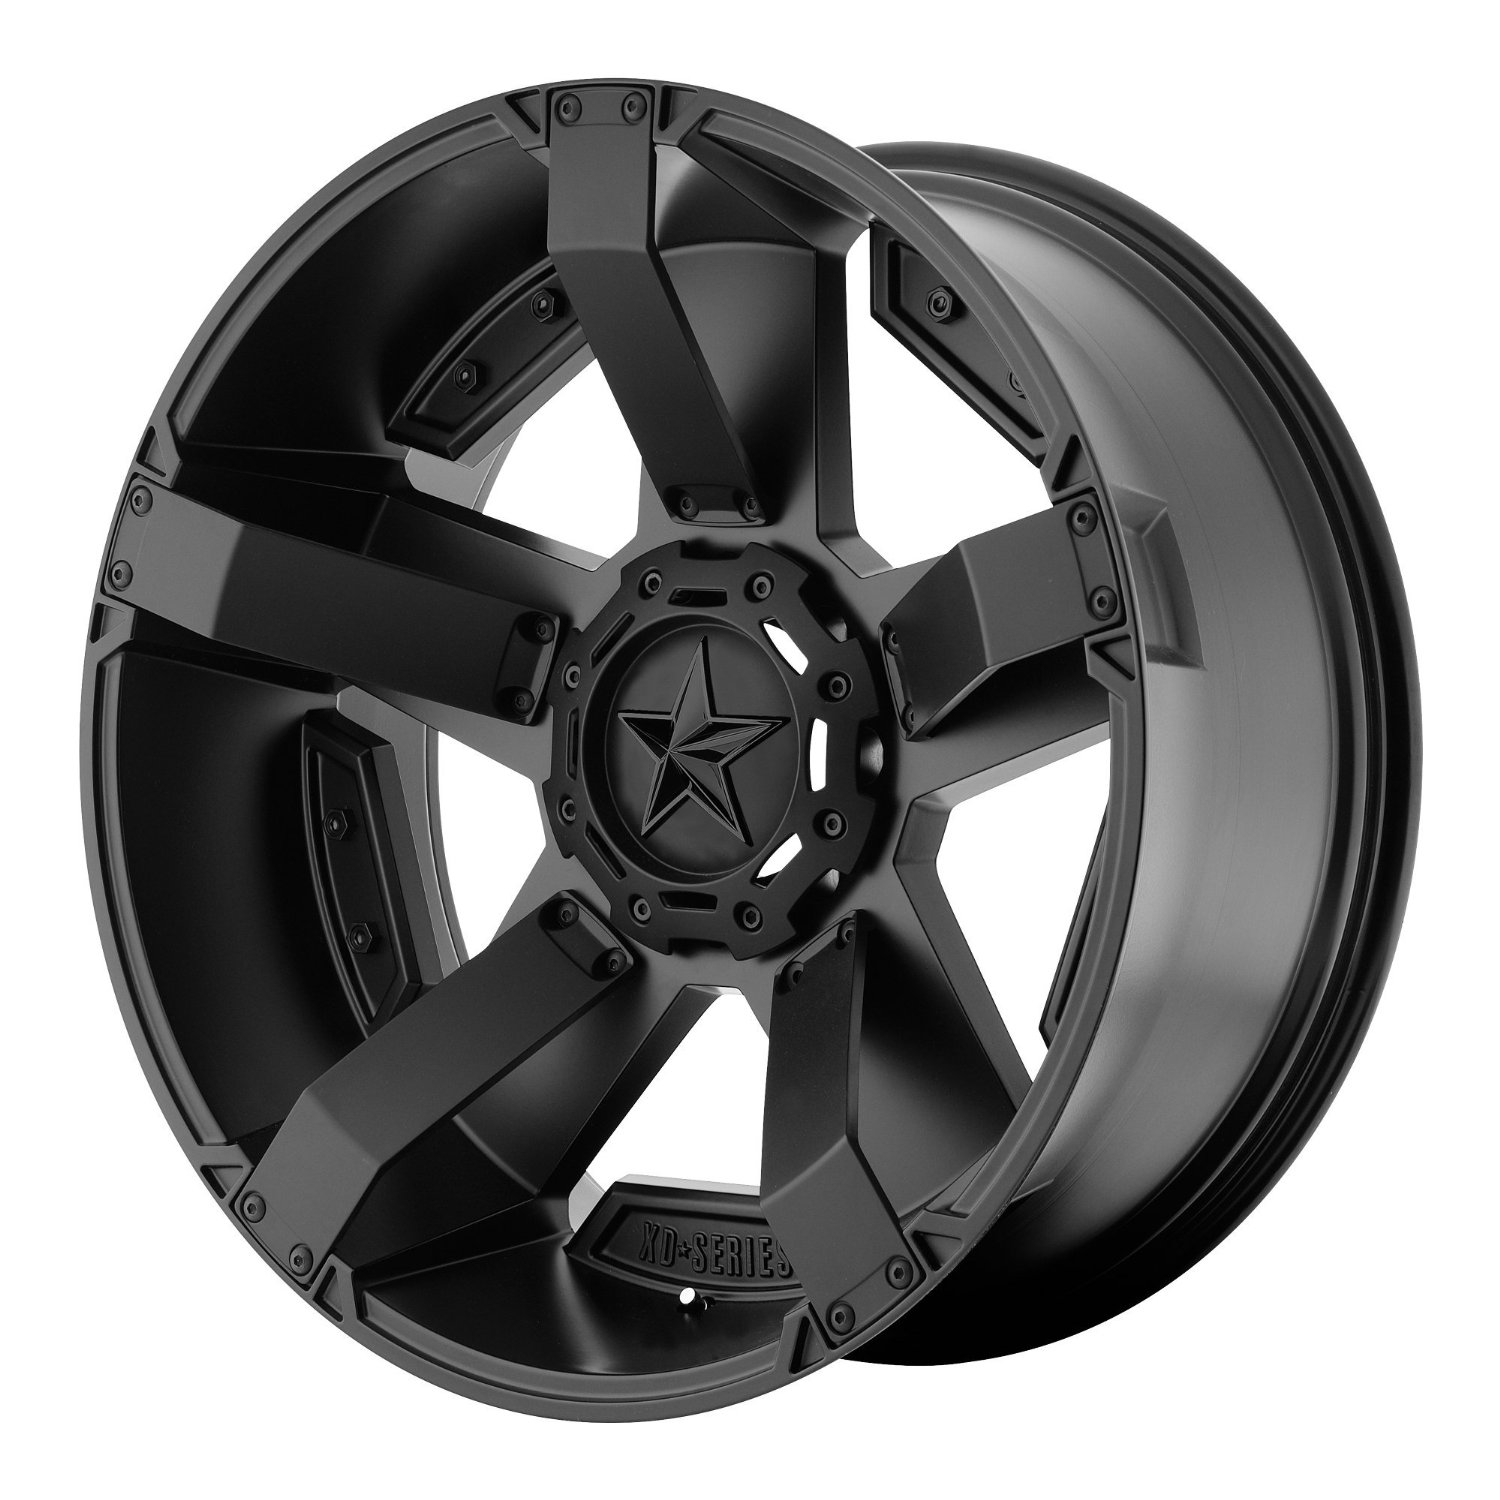 "XD Series by KMC Wheels XD811 Rockstar II Satin Black Wheel With Accents (17x8""/5x150mm, +35mm offset)"